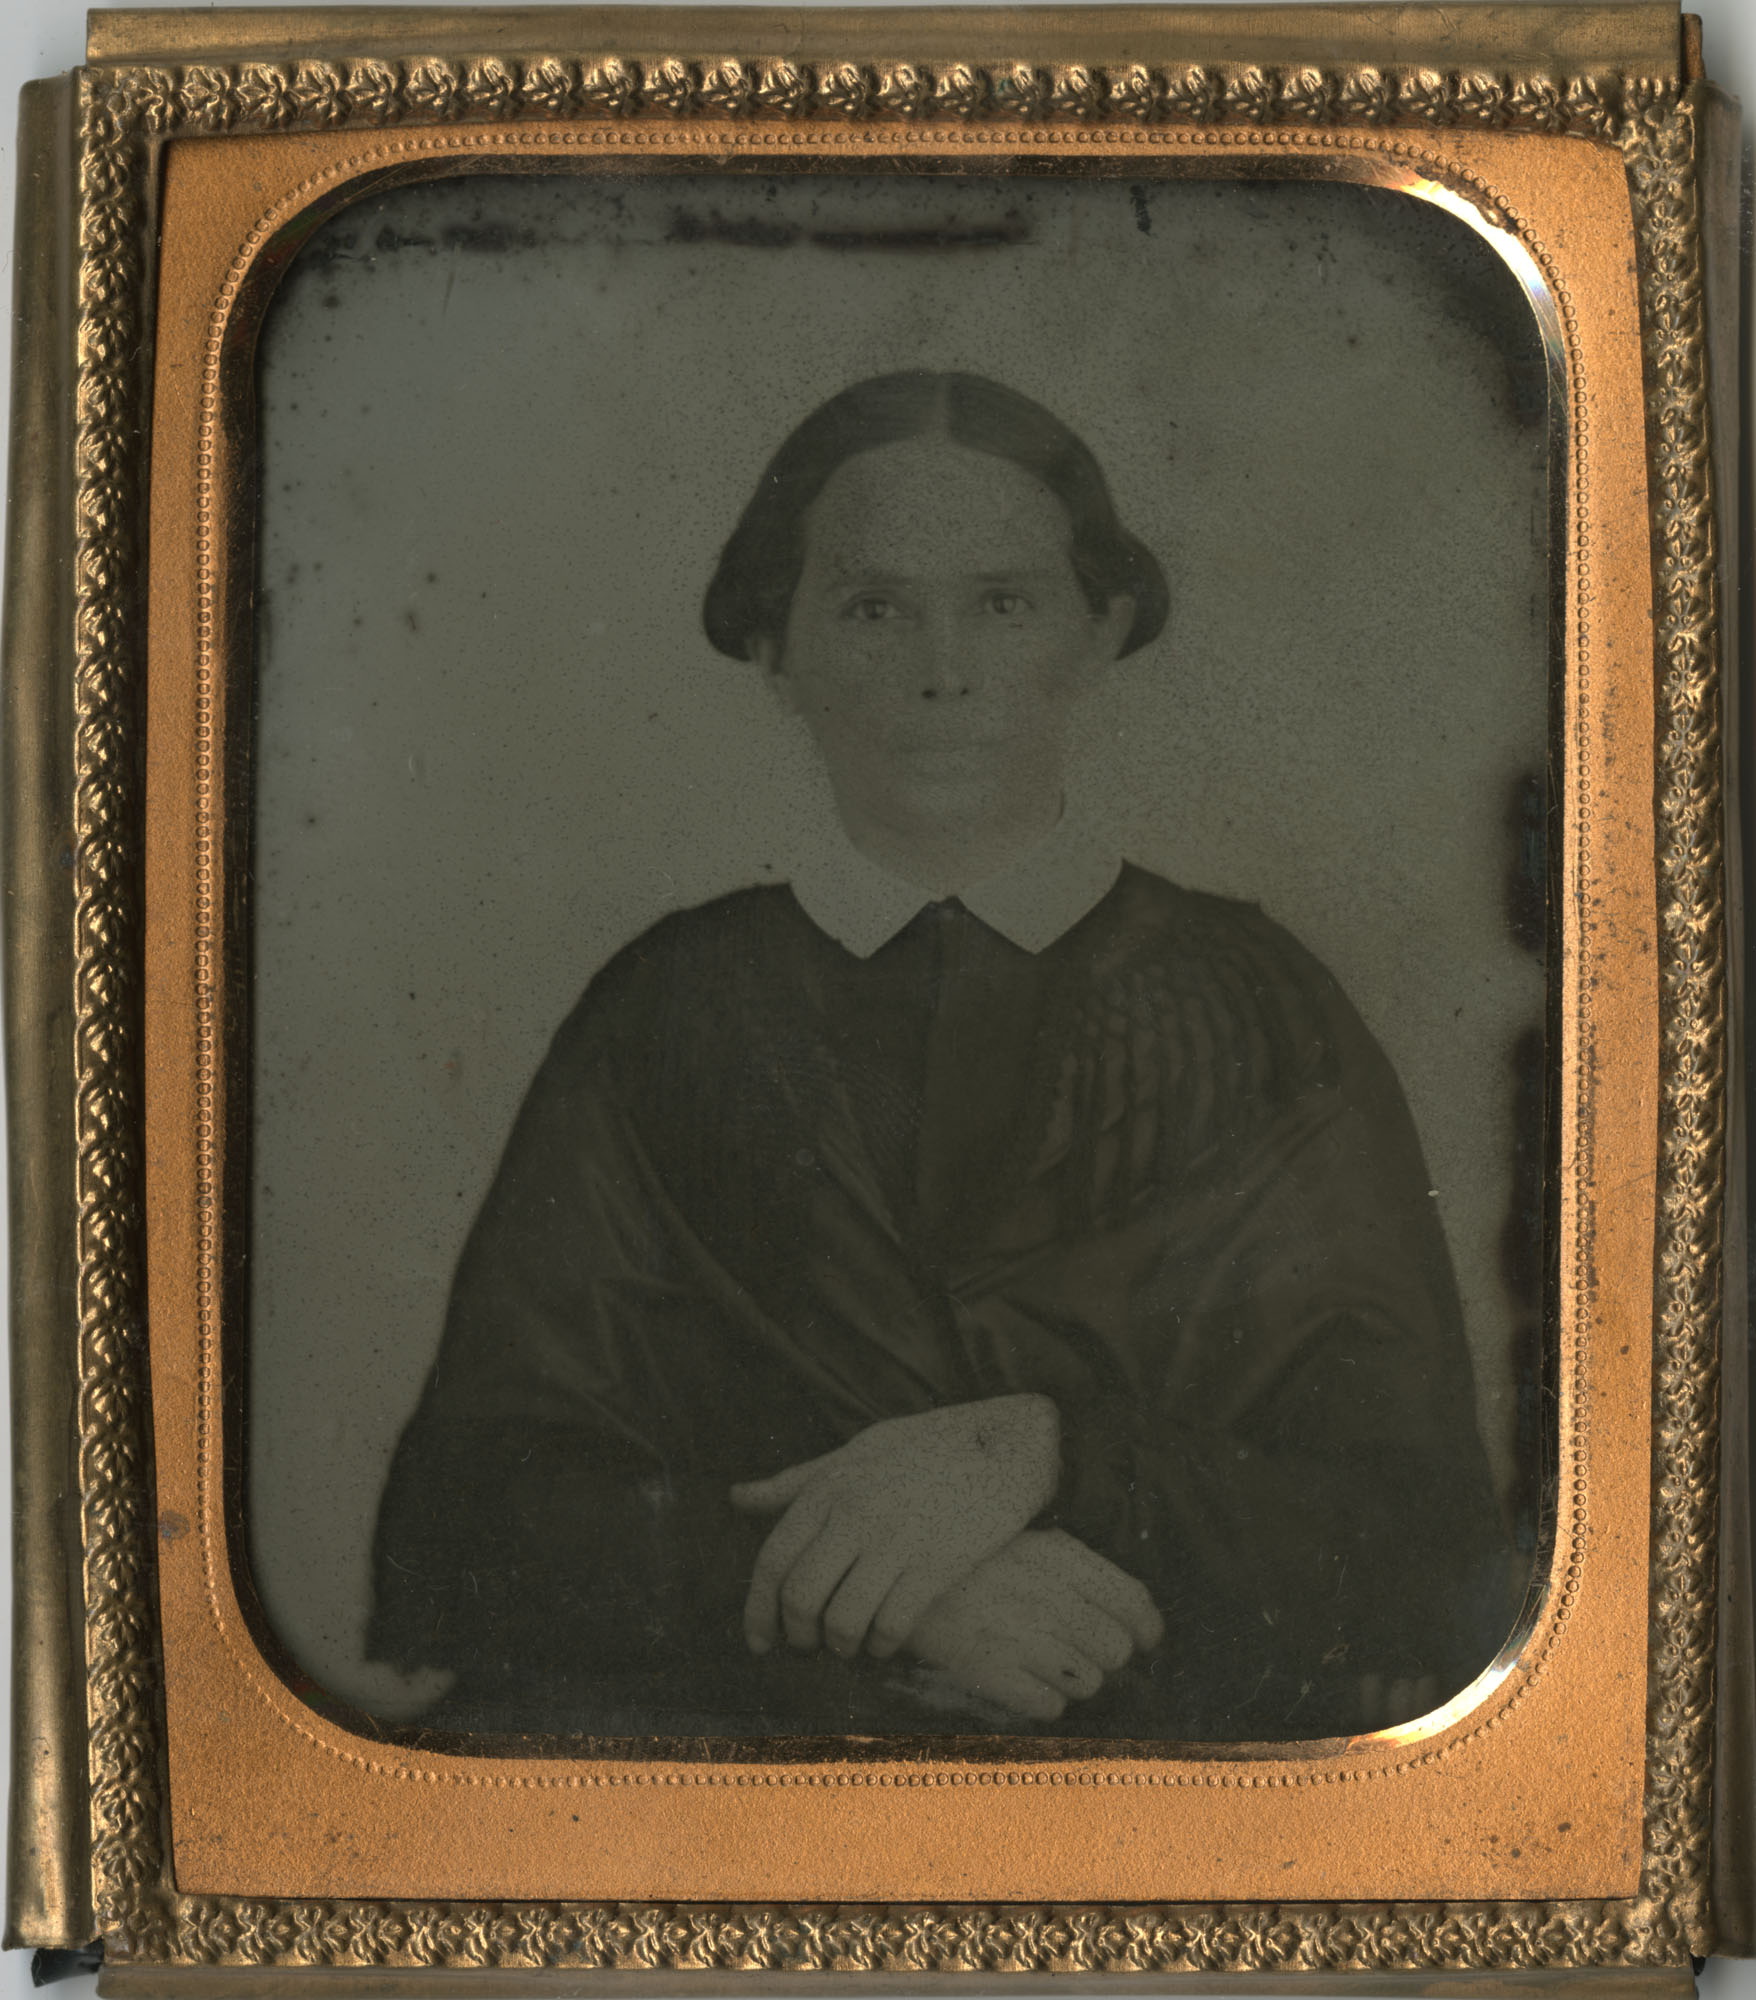 Cased Ambrotype of an African American Woman